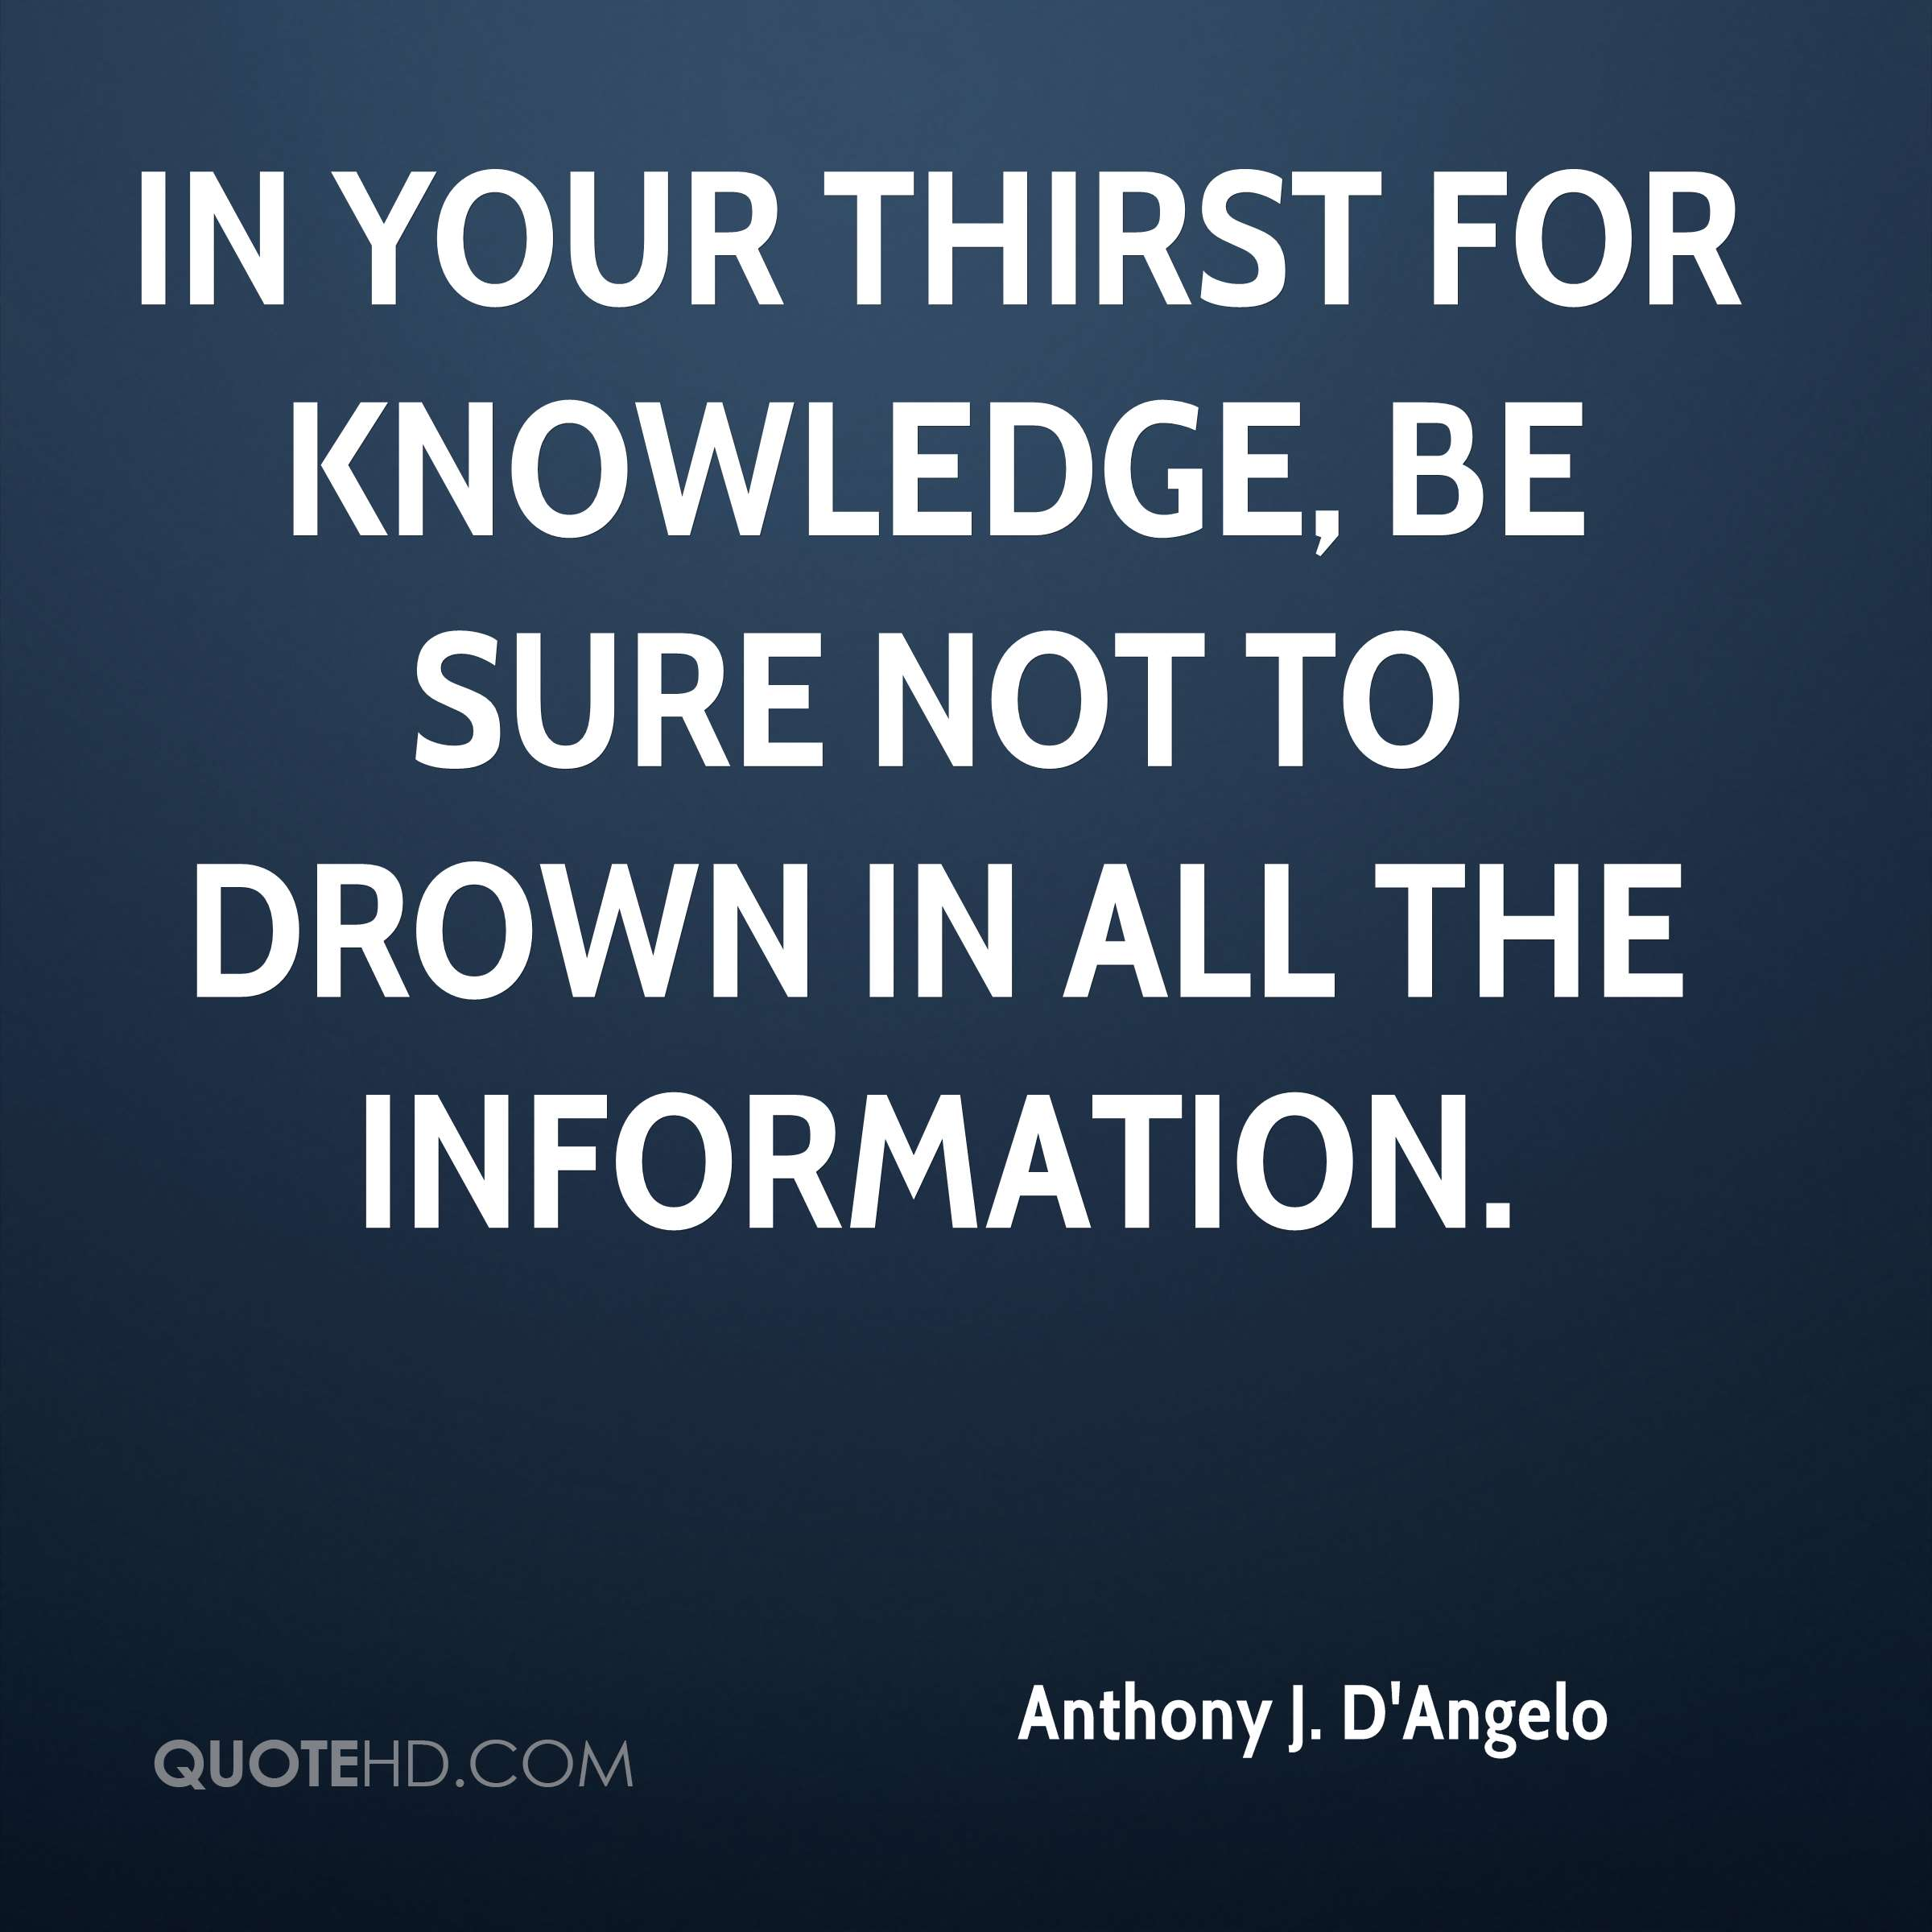 In your thirst for knowledge, be sure not to drown in all the information.